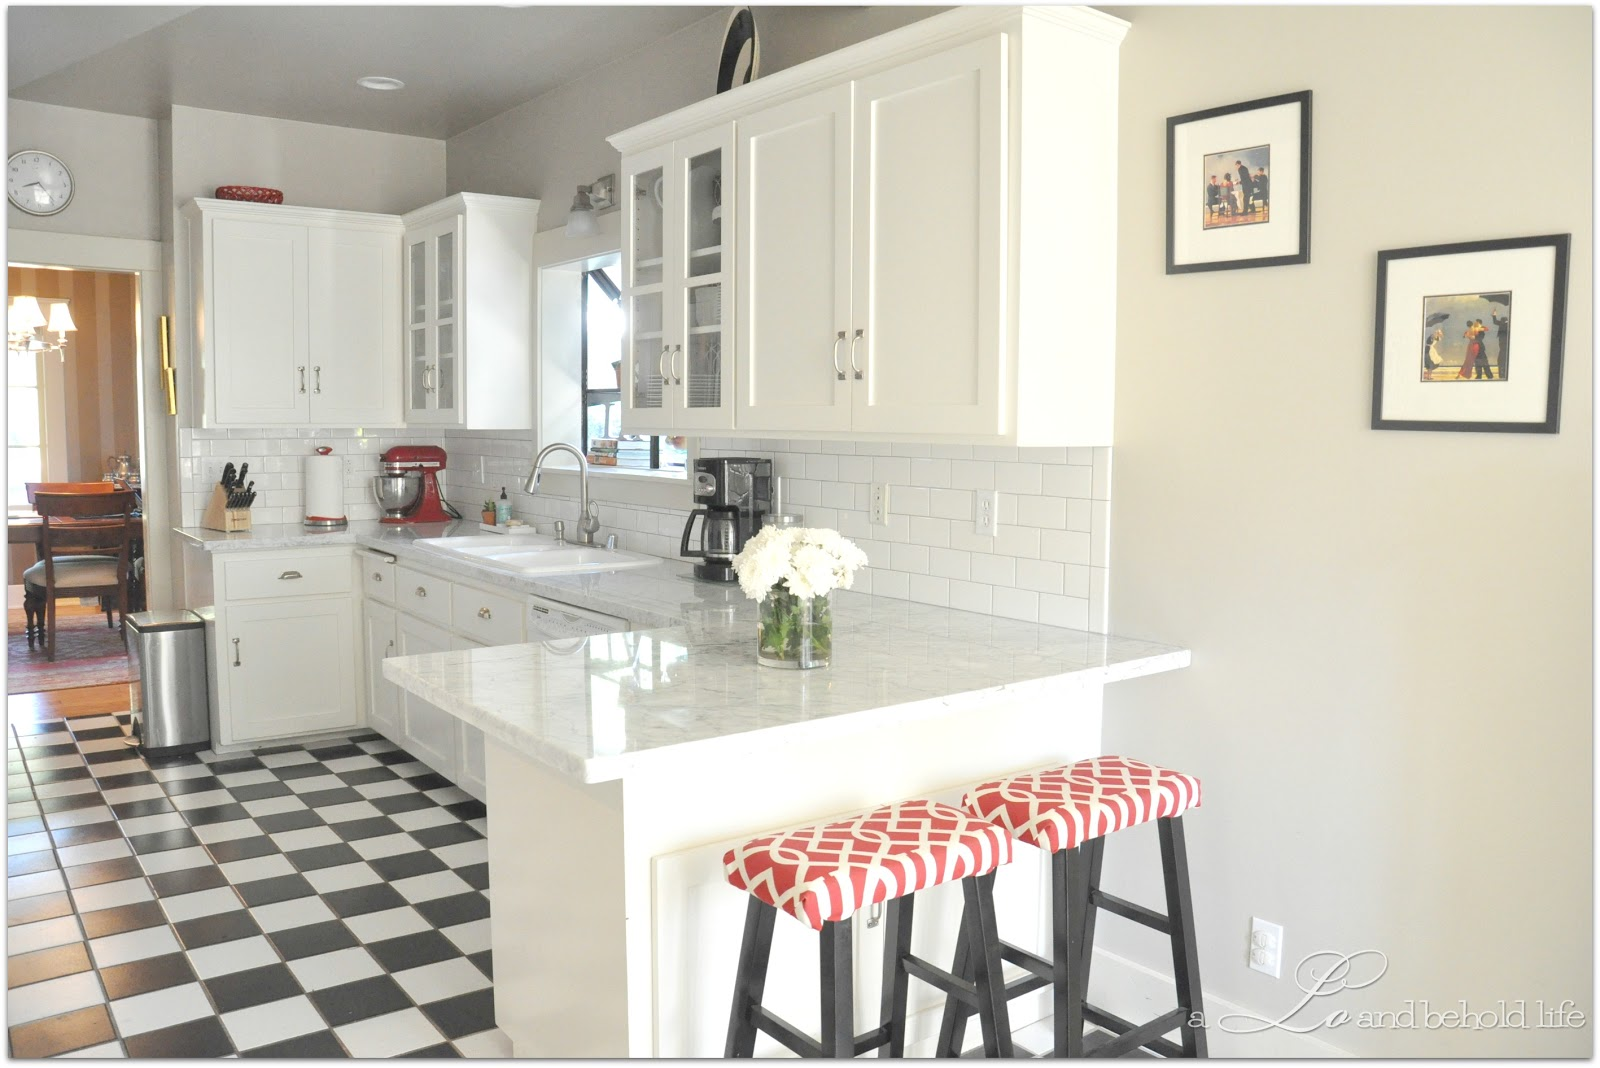 Home Tour Part 3: Kitchen Reveal | A Lo and Behold Life